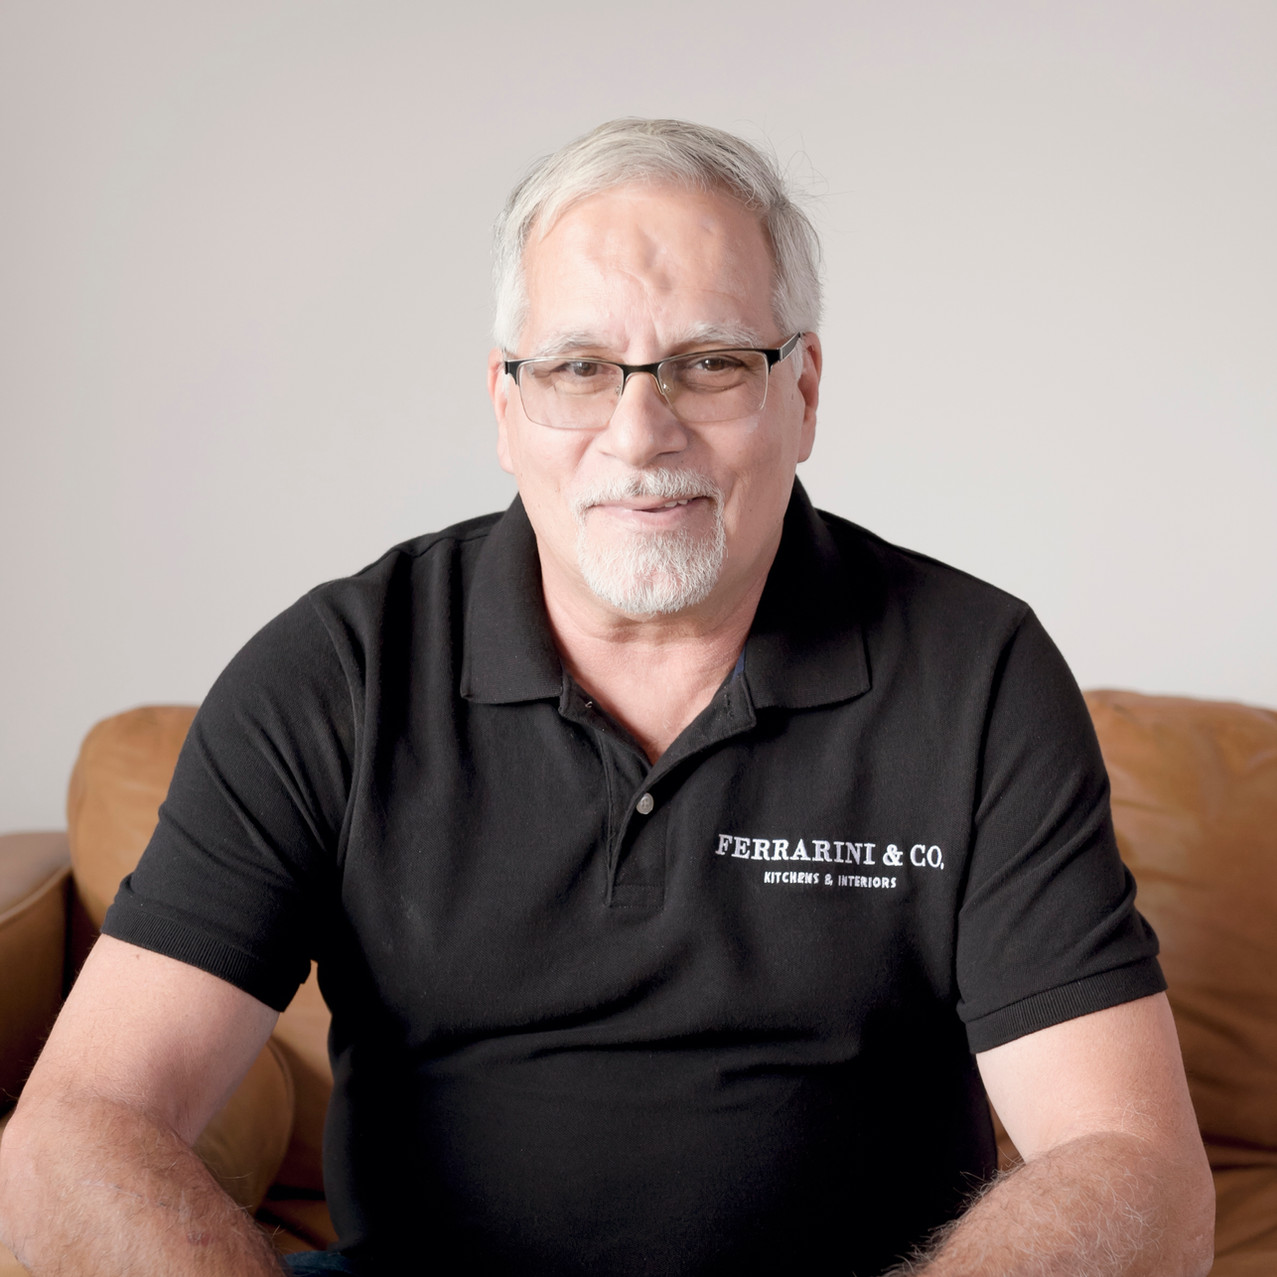 Business lifestyle head shot photography